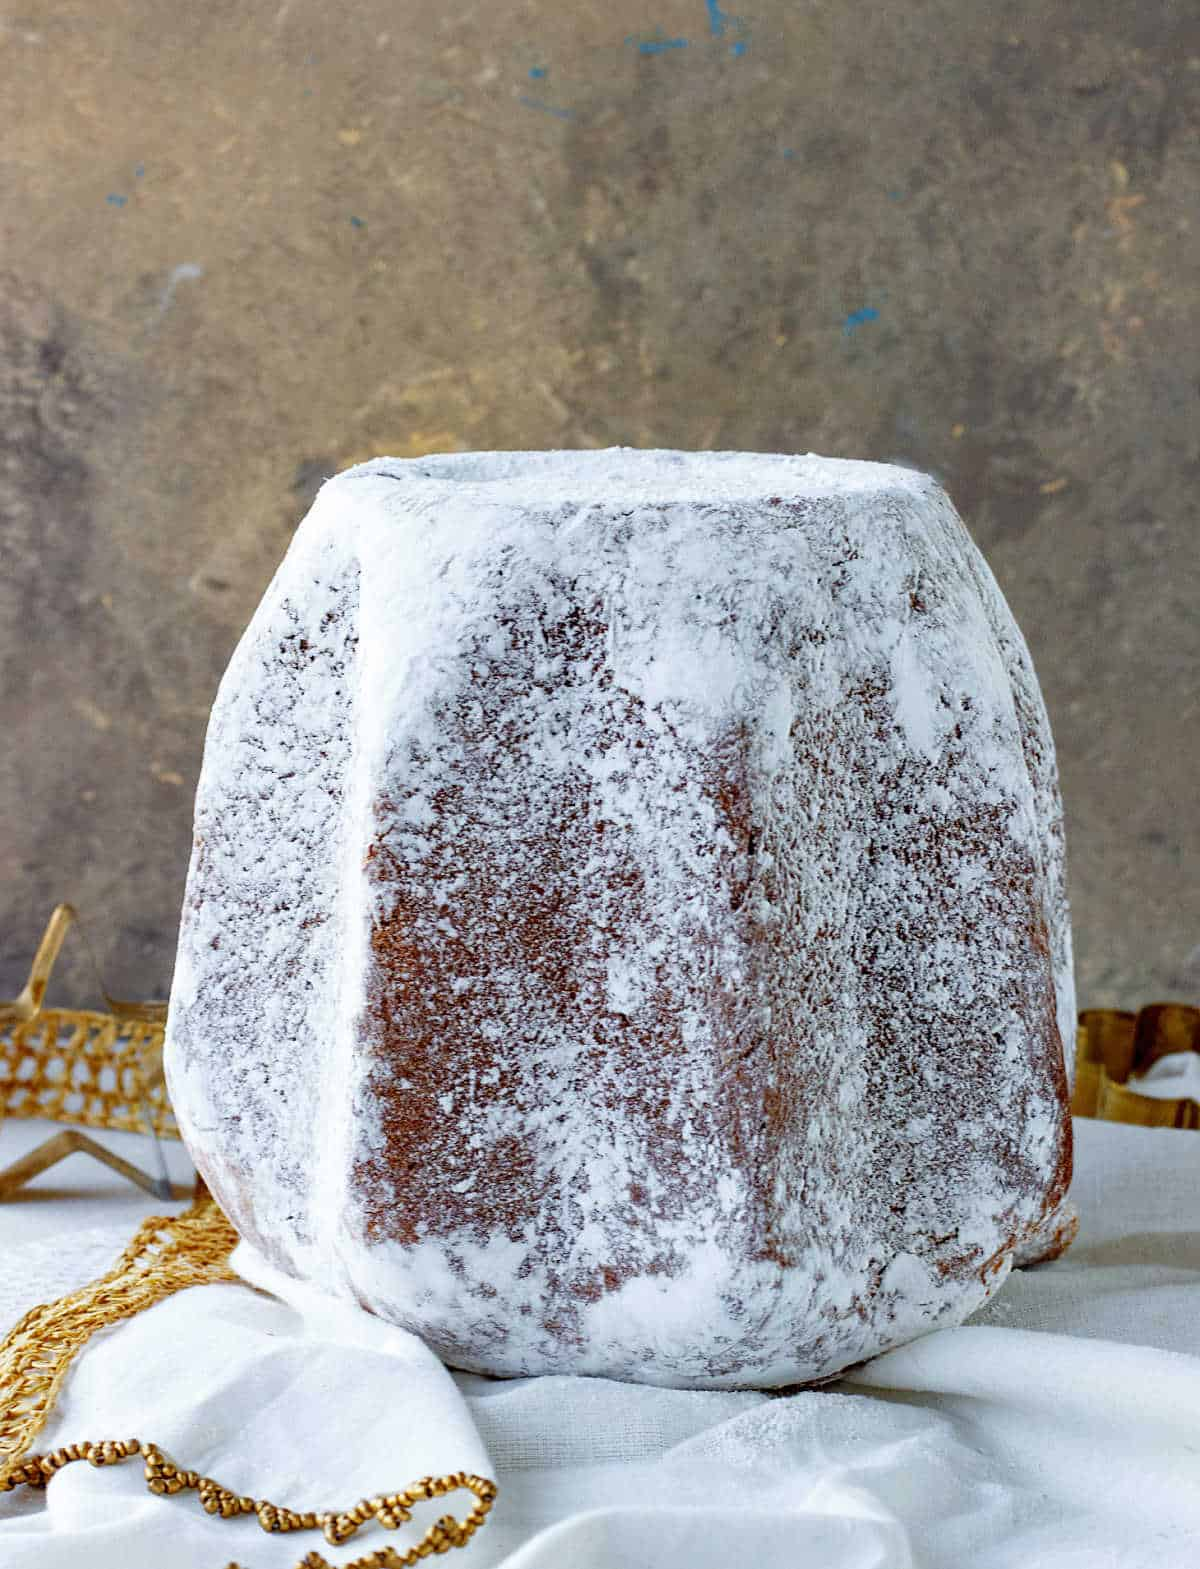 Whole pandoro bread covered in powdered sugar on white golden background